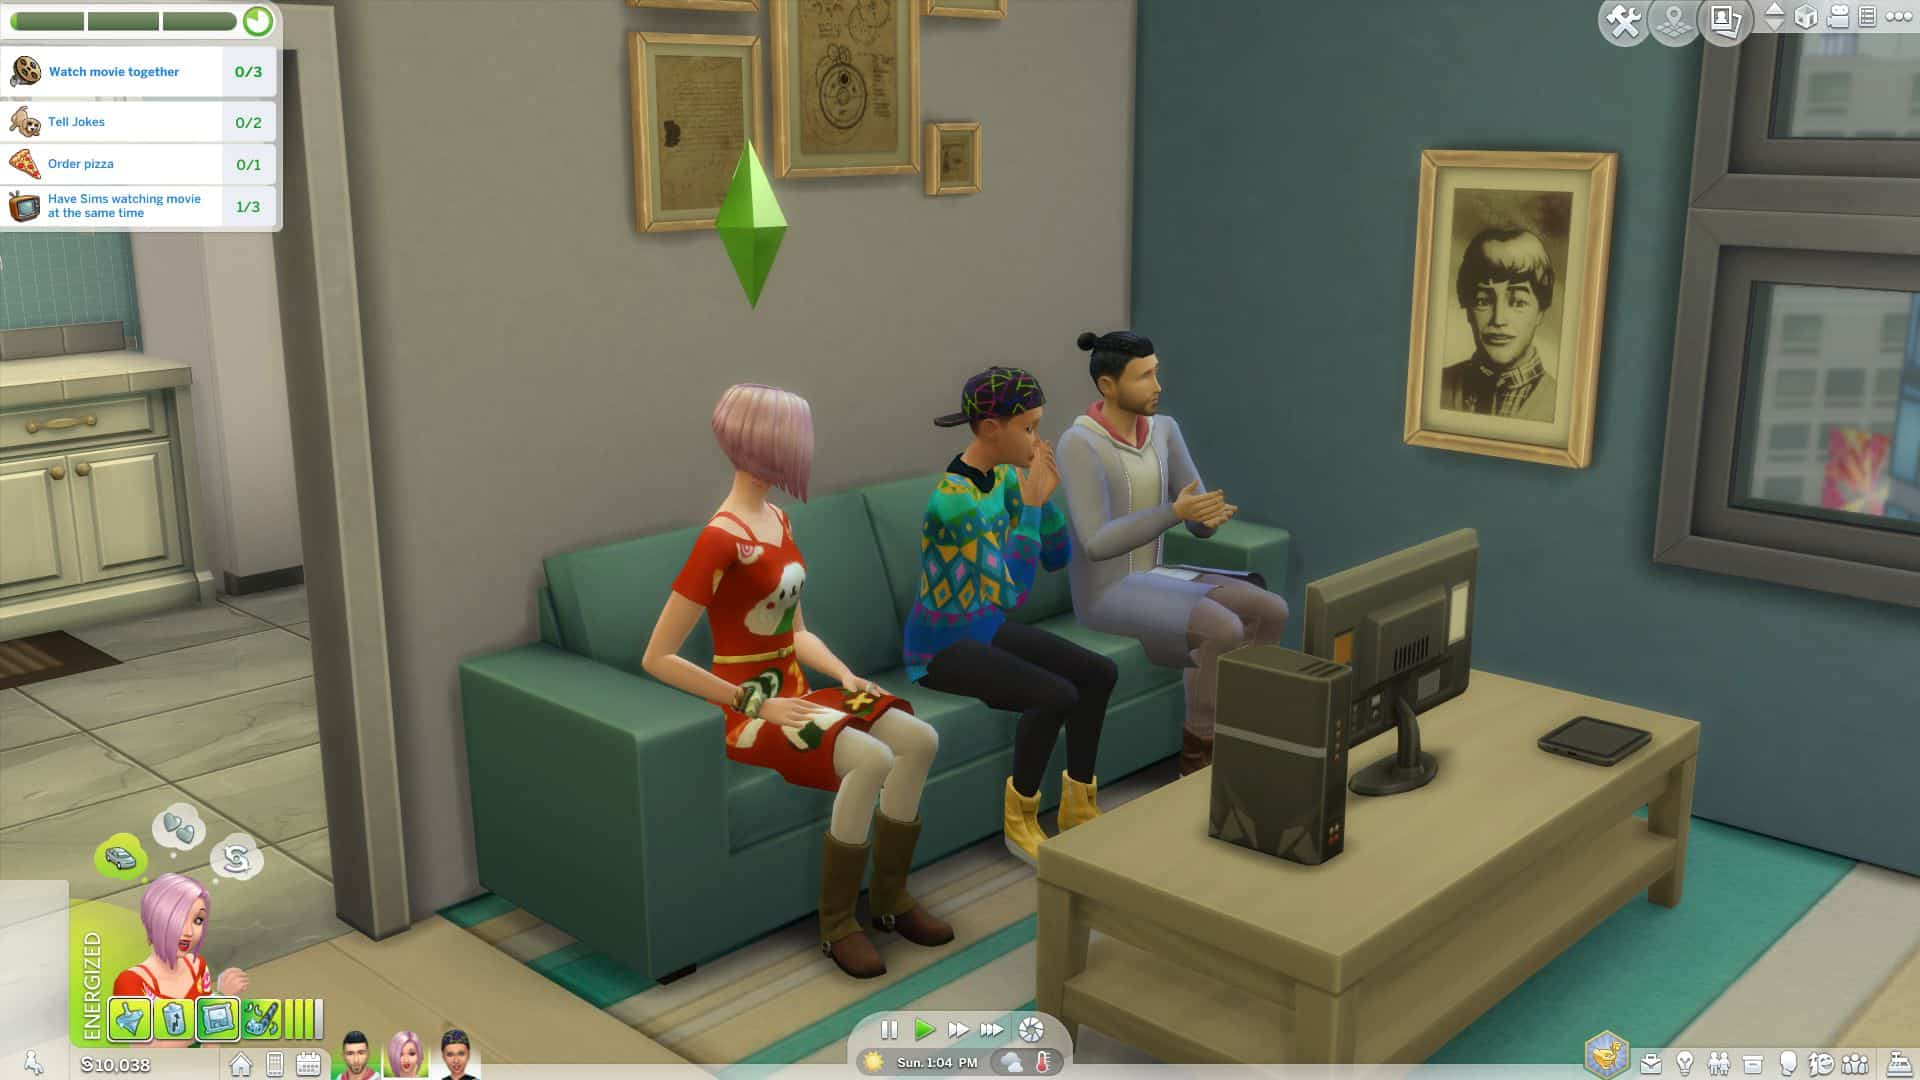 sims 4 mods free download pc